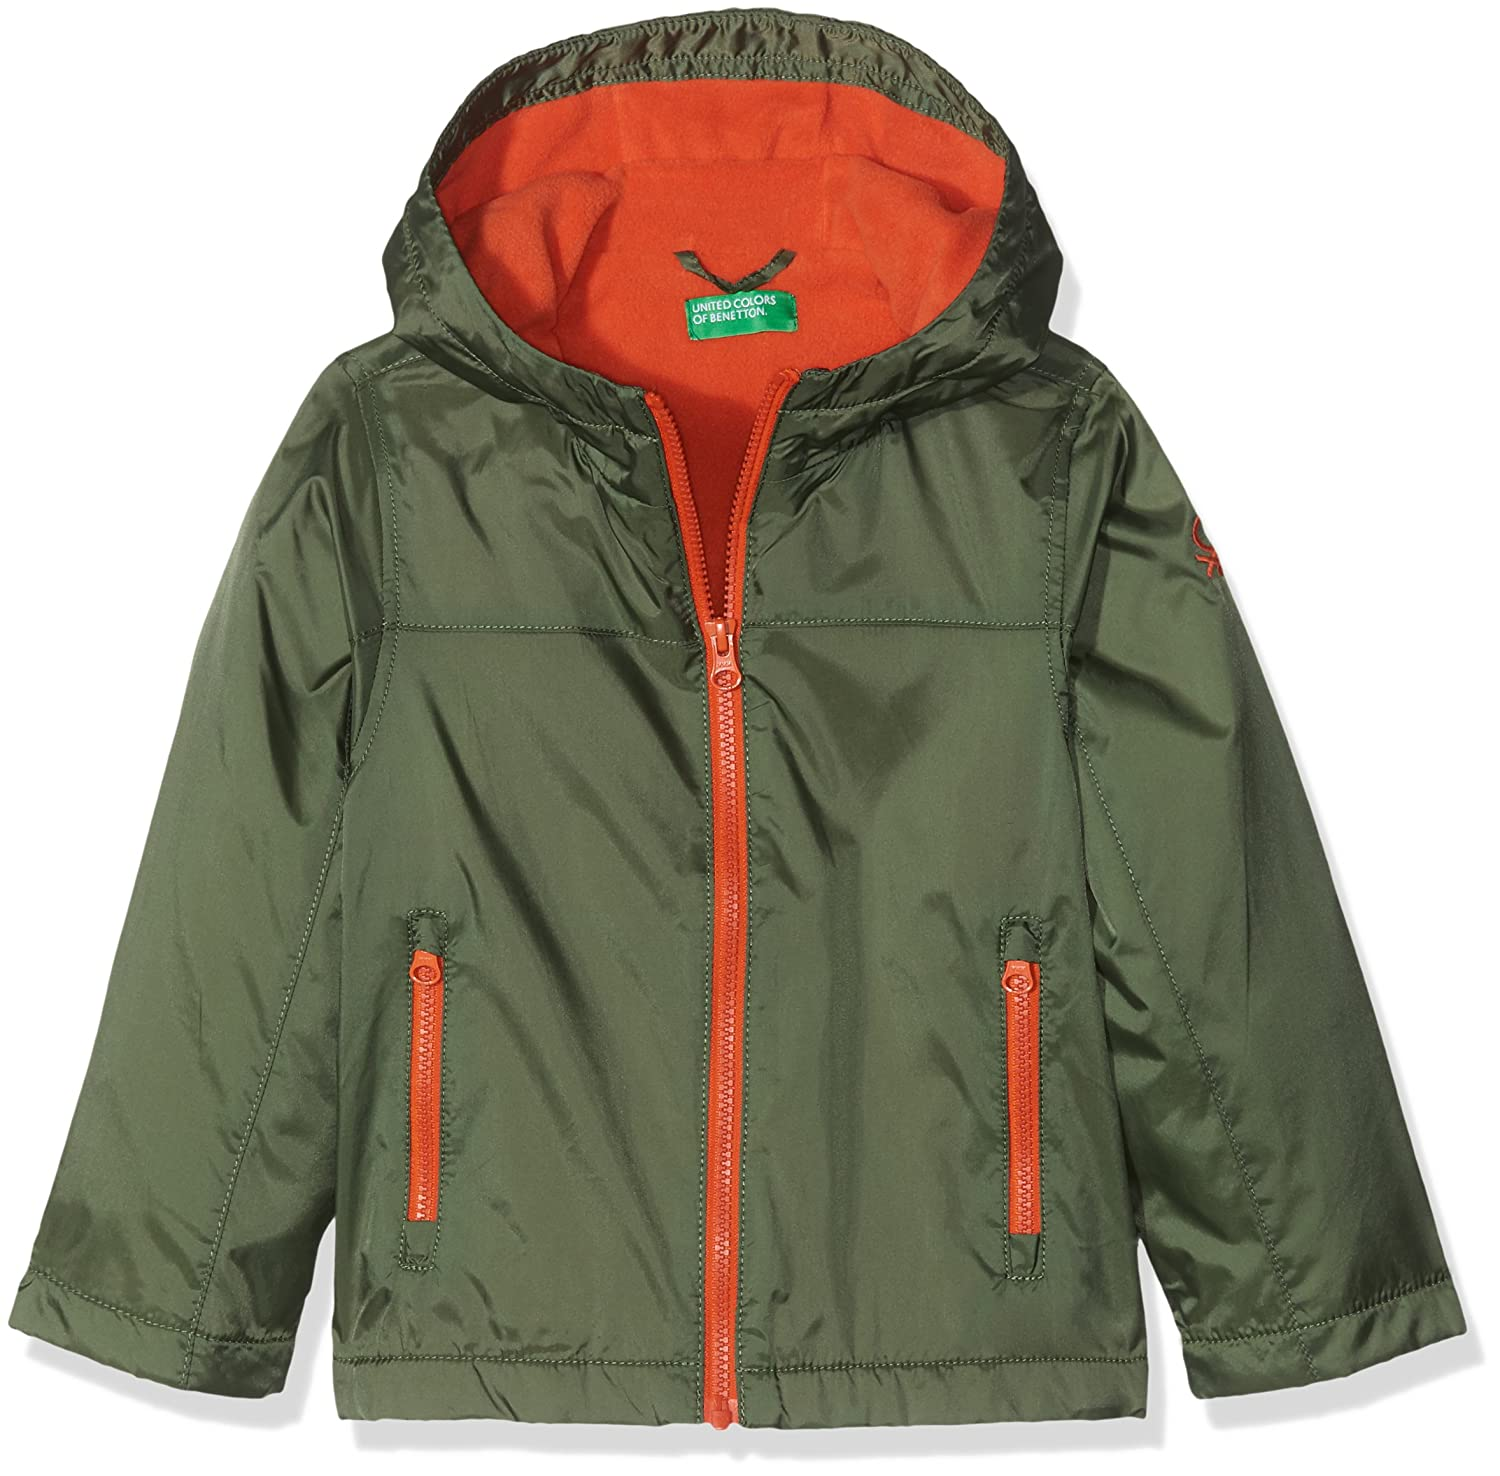 United Colors of Benetton, Chaqueta con Capucha para Niños, Verde (Dark Green 12G), 160 cm: Amazon.es: Ropa y accesorios